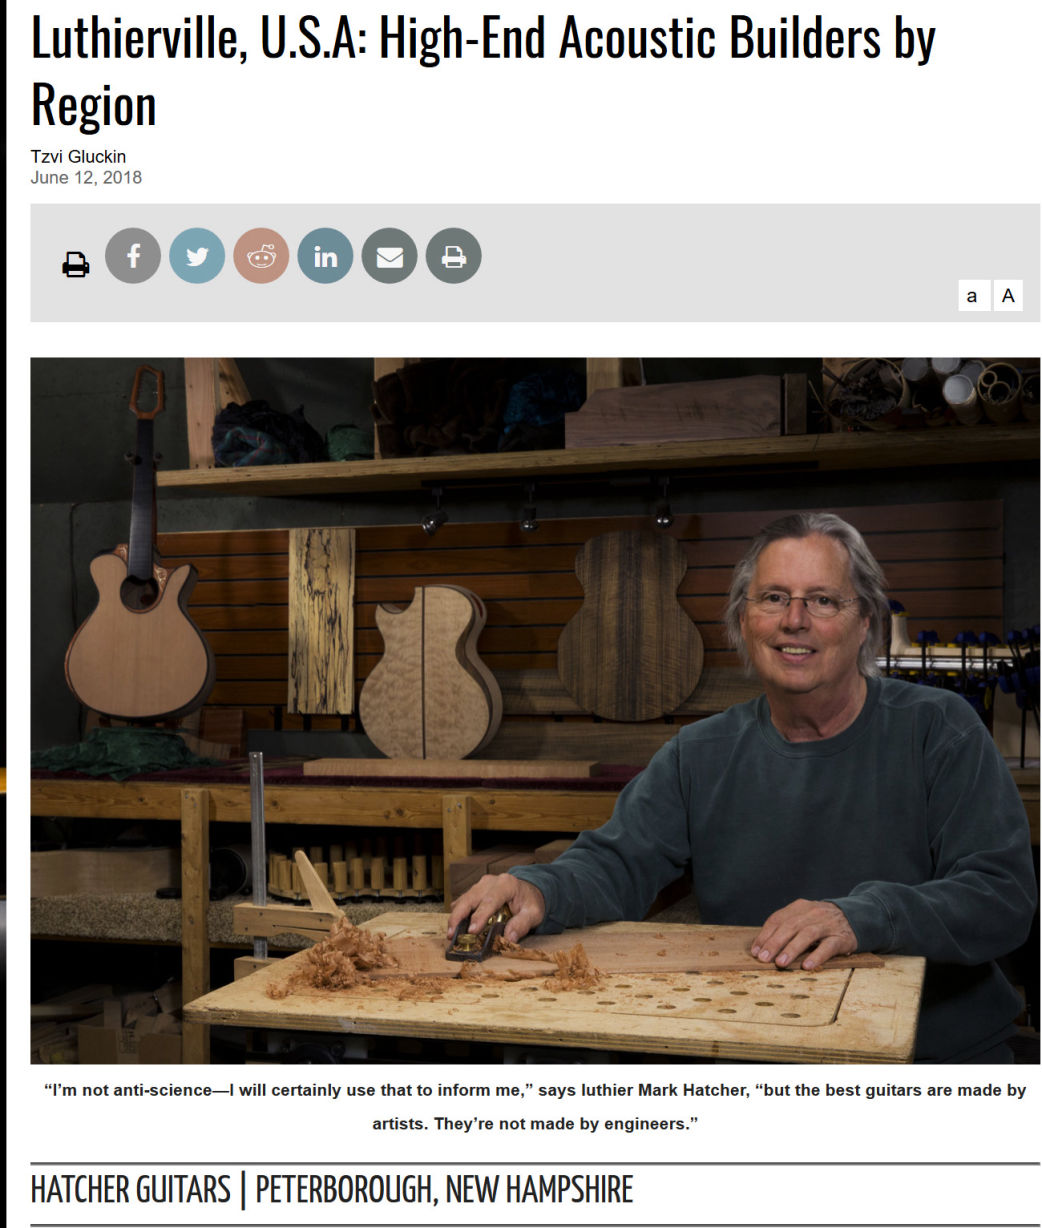 Premium Guitar Hatcher Guitars Article Header